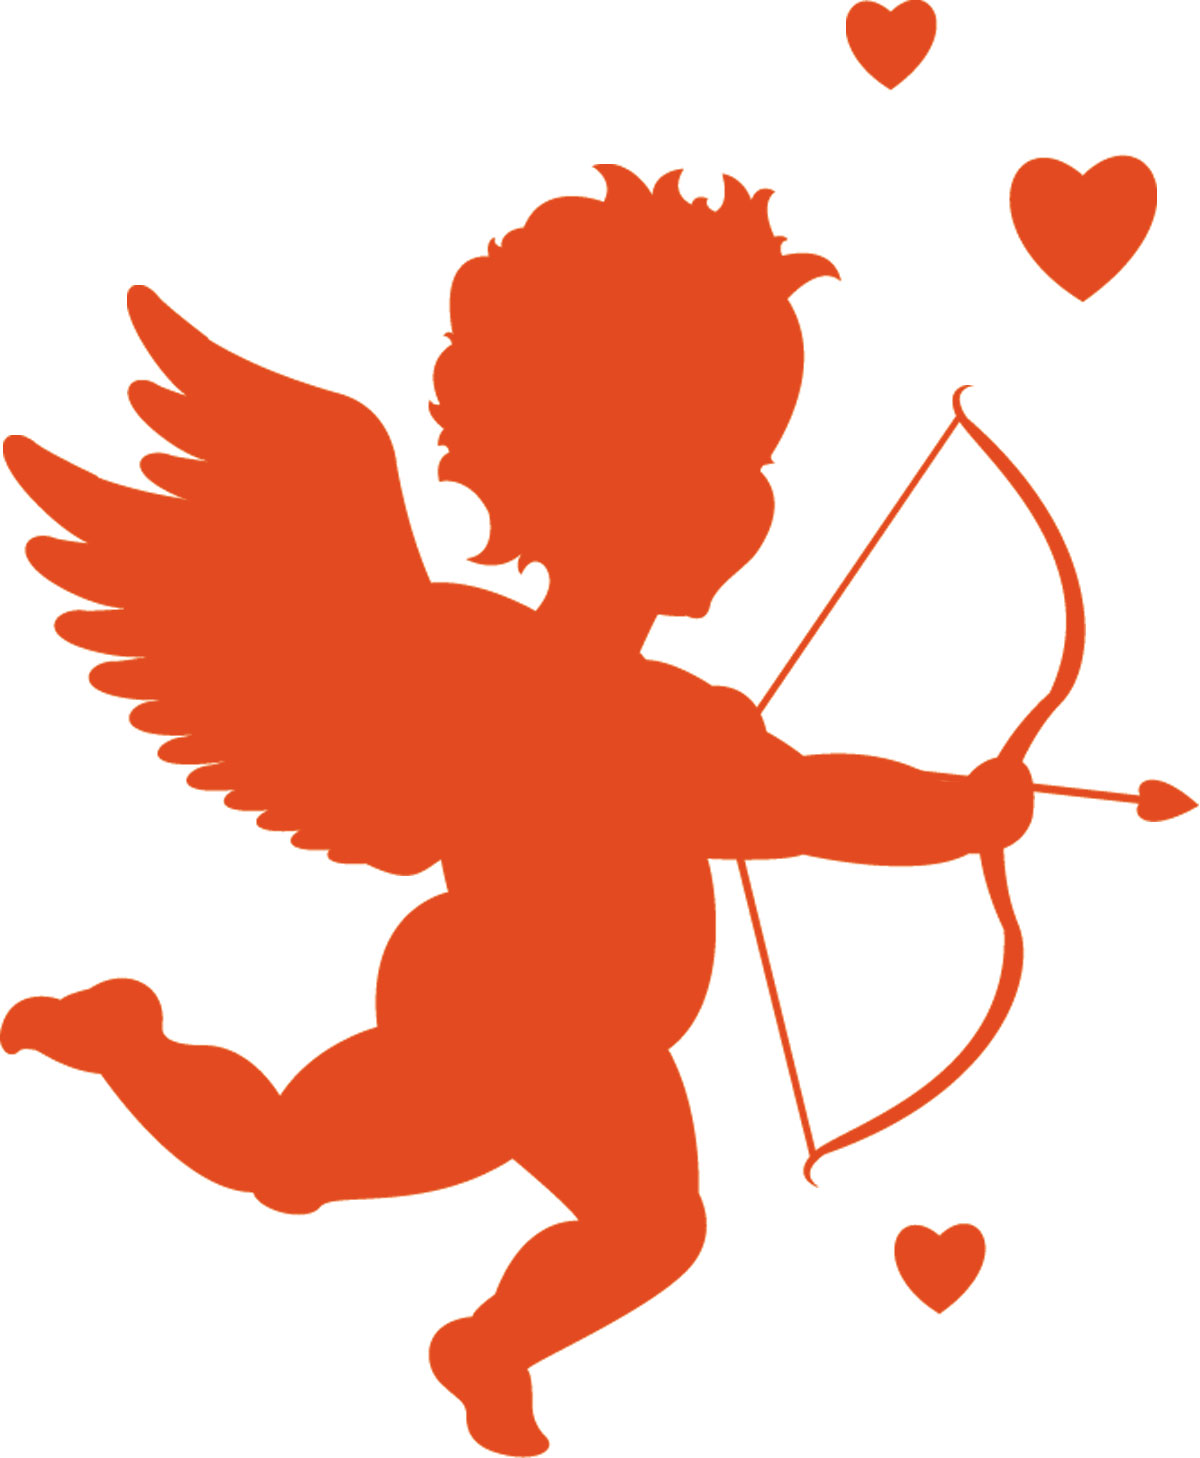 Heart cupid dating site